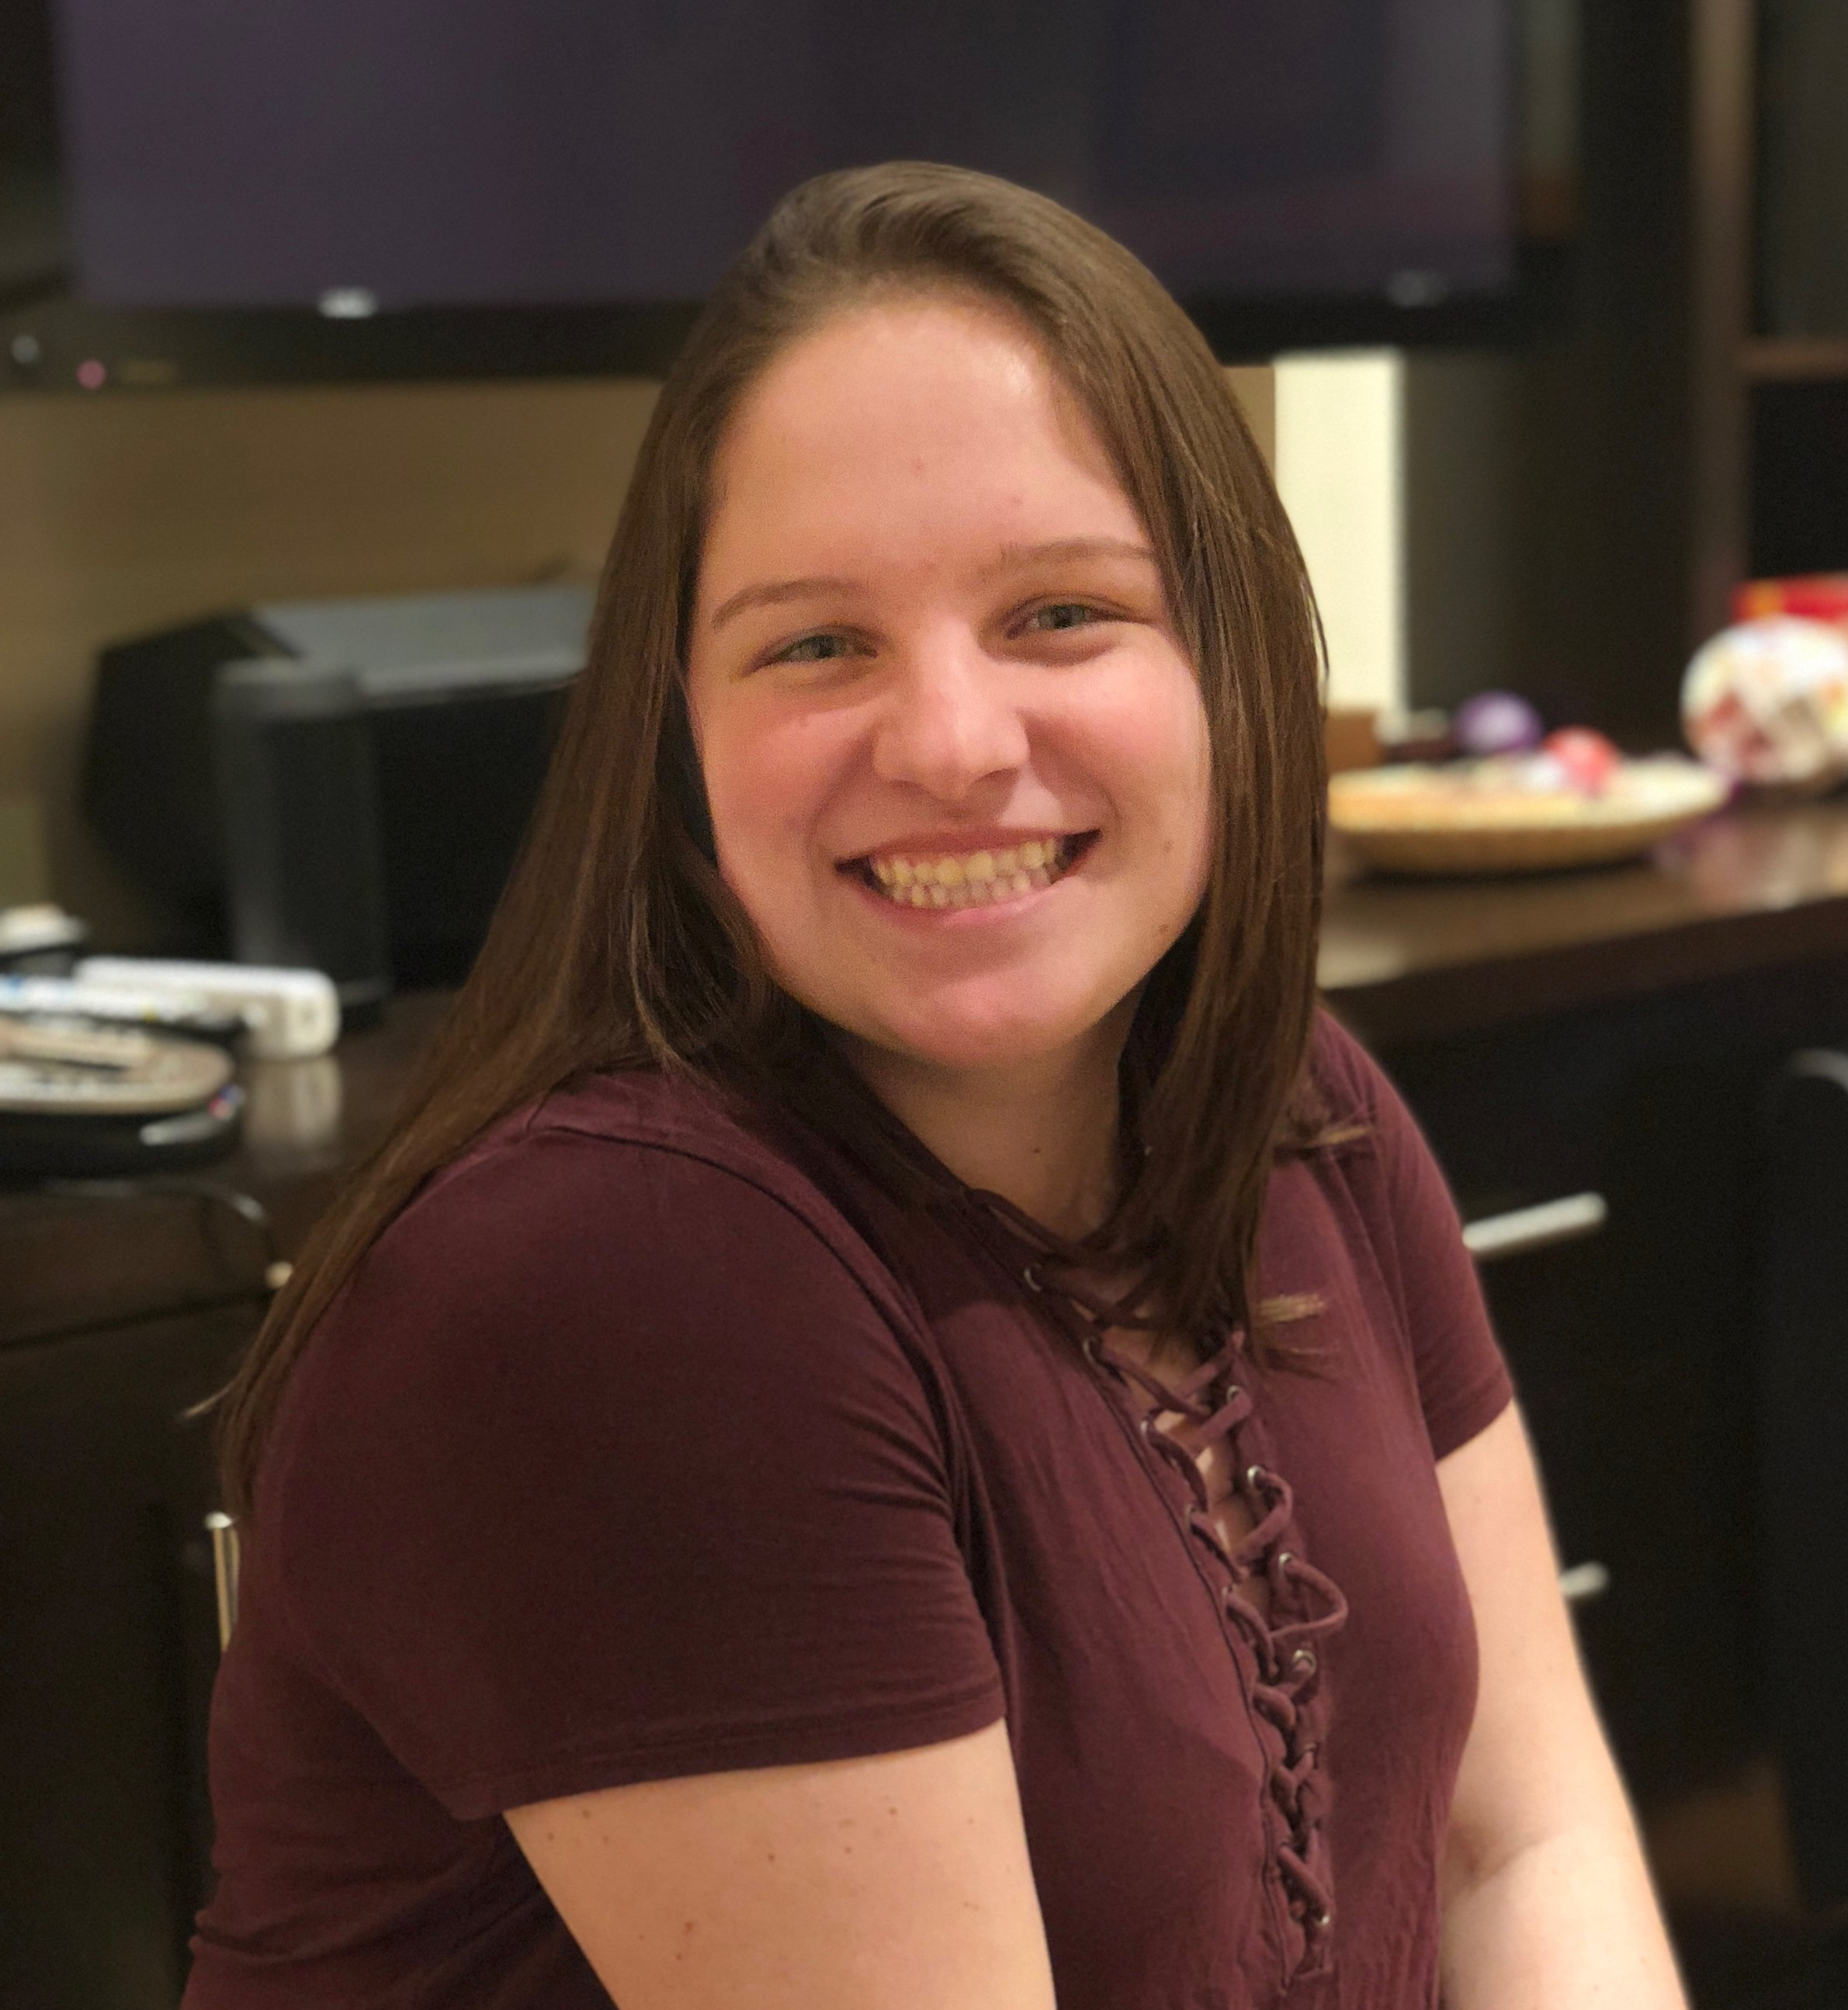 Molly Gilligan - Northeastern University LiaisonMolly is a sophomore at Northeastern University, where she transferred to this past fall. She has interned and worked closely with the organization City Year in the past, a service organization that focuses on education.